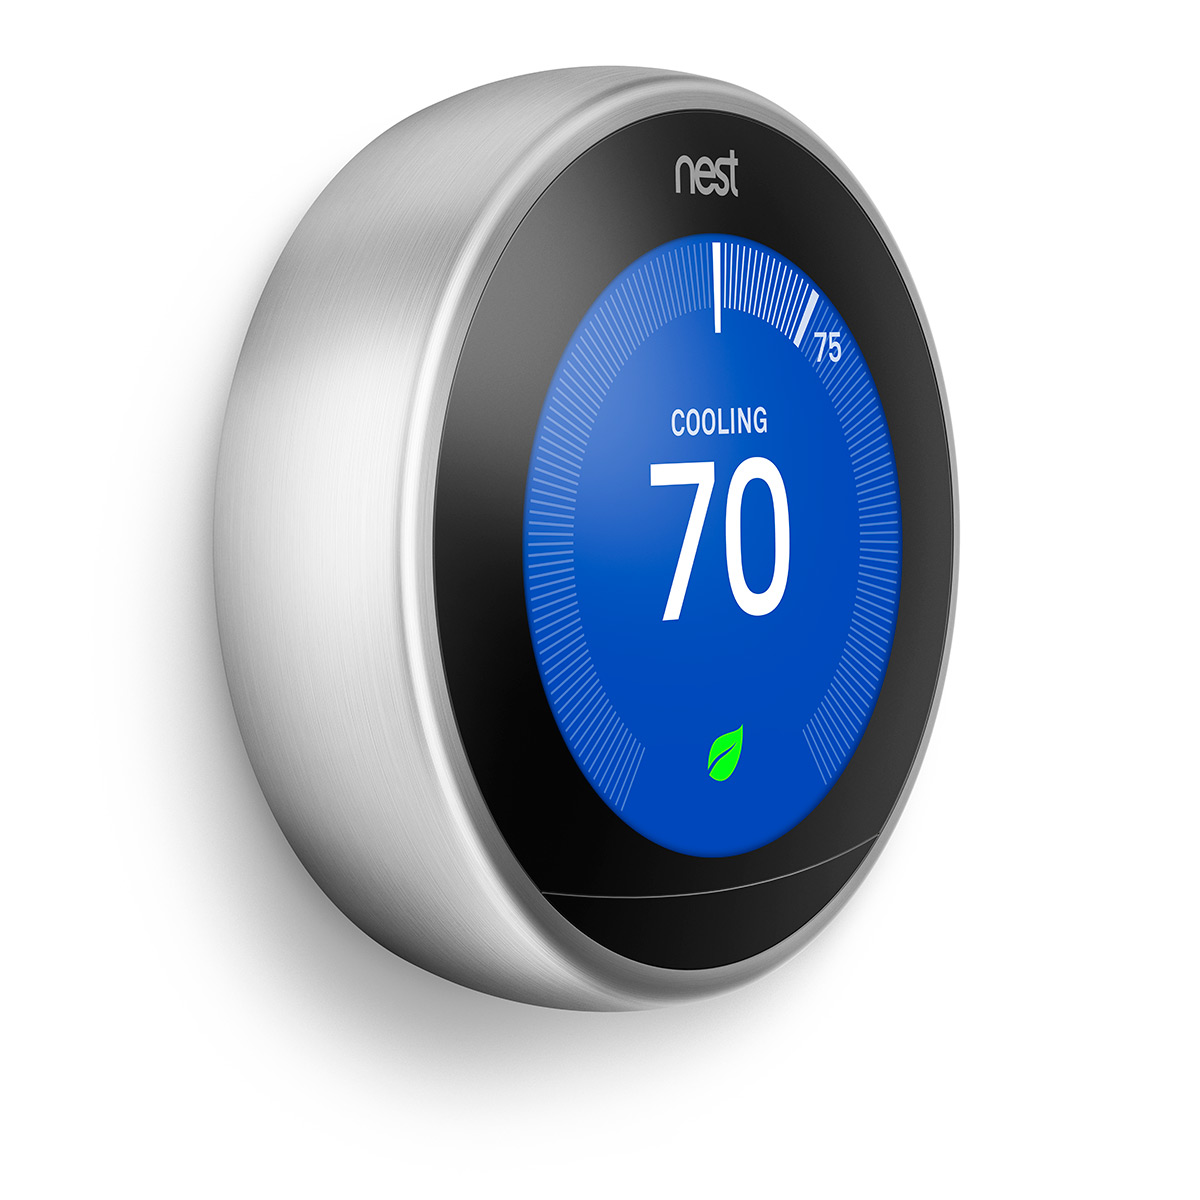 Nest Thermostat Groove Management